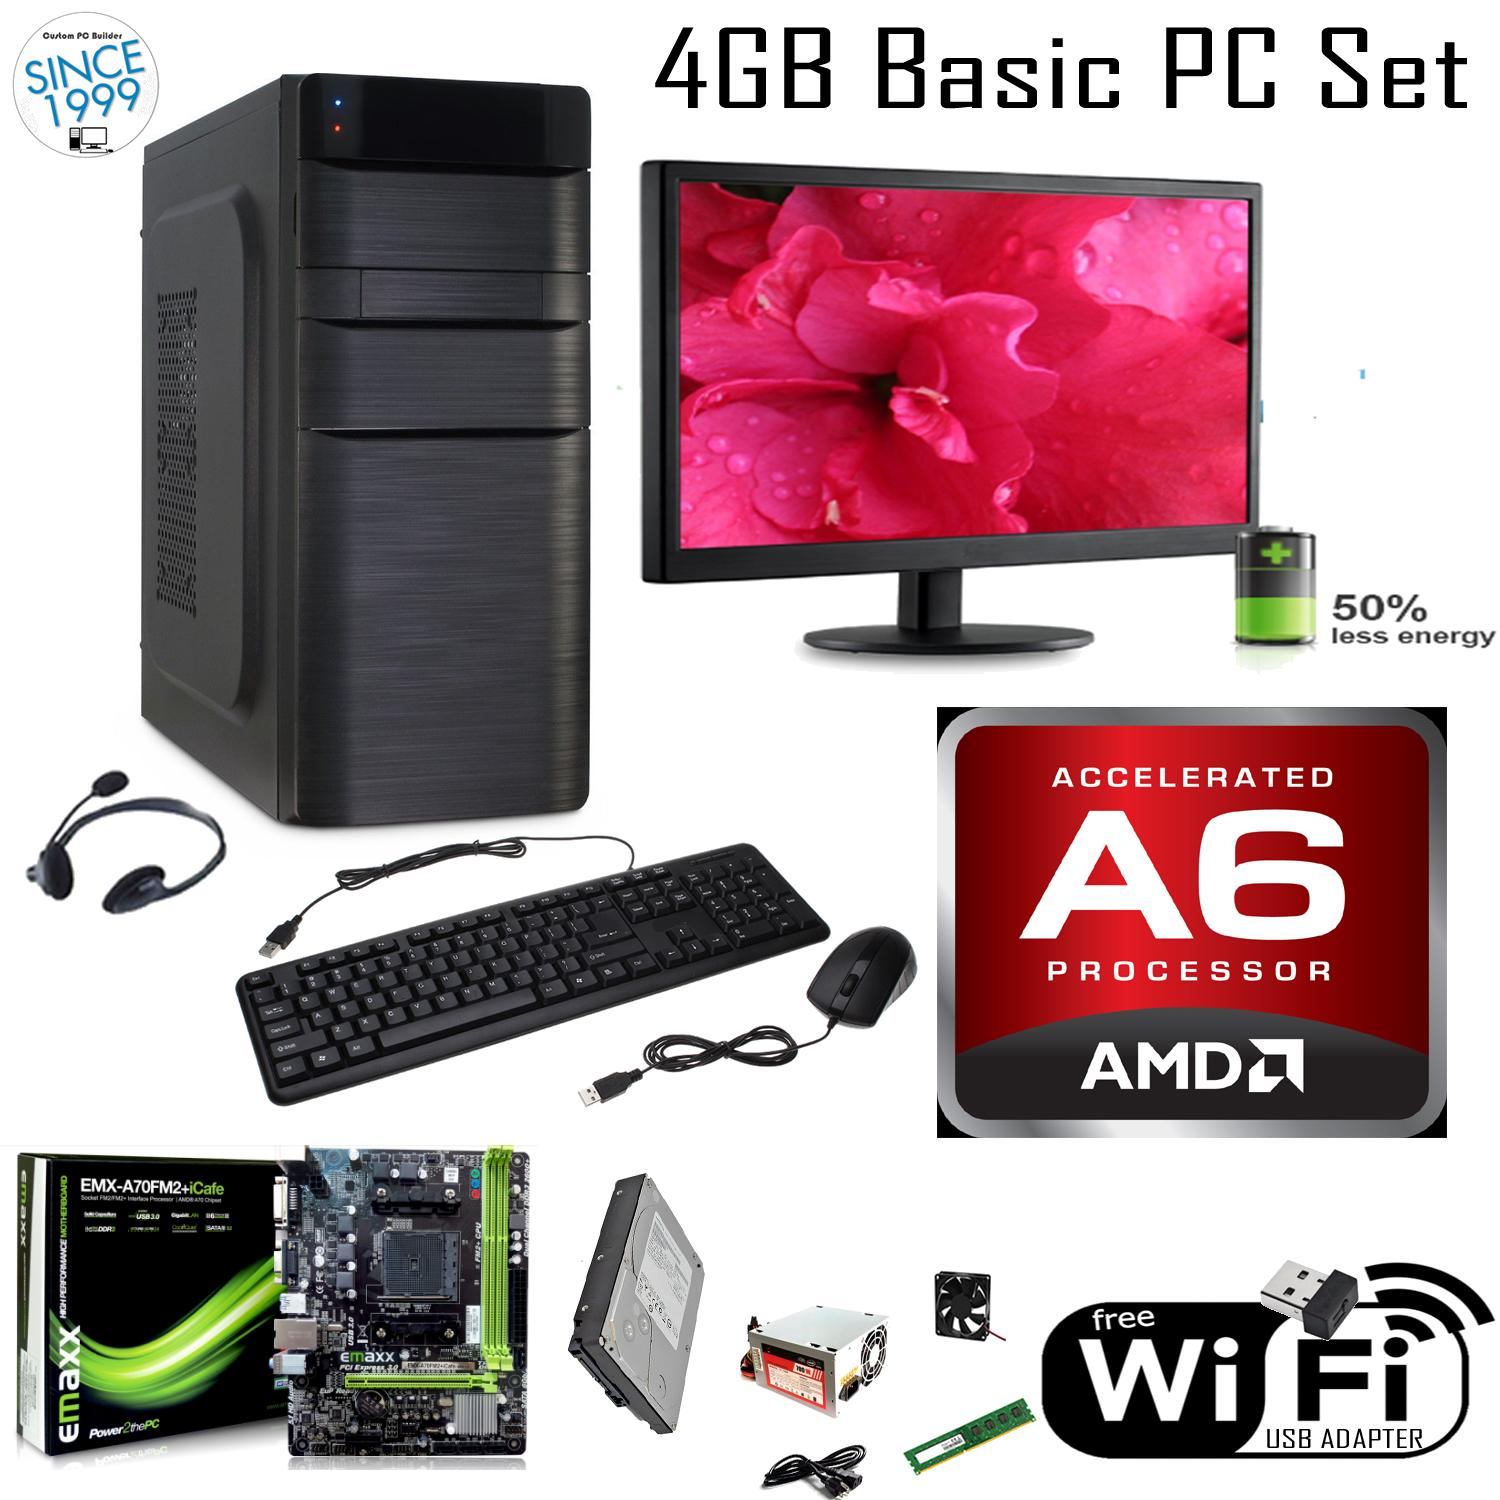 X-PC 15.6 LED, AMD A6-7400k Kaveri 3.5GHz. ATI R5. WiFi Ready. Emaxx EMX-A70FM2+ICAFE, AOC 15.6 LED. 4GB DDR3 1333Mhz (2x2GB), 320GB Hitachi SATA OEM. ATX 700w, Free: Keyboard, Mouse, Headset, 80mm Fan, USb WiFi Adapter.